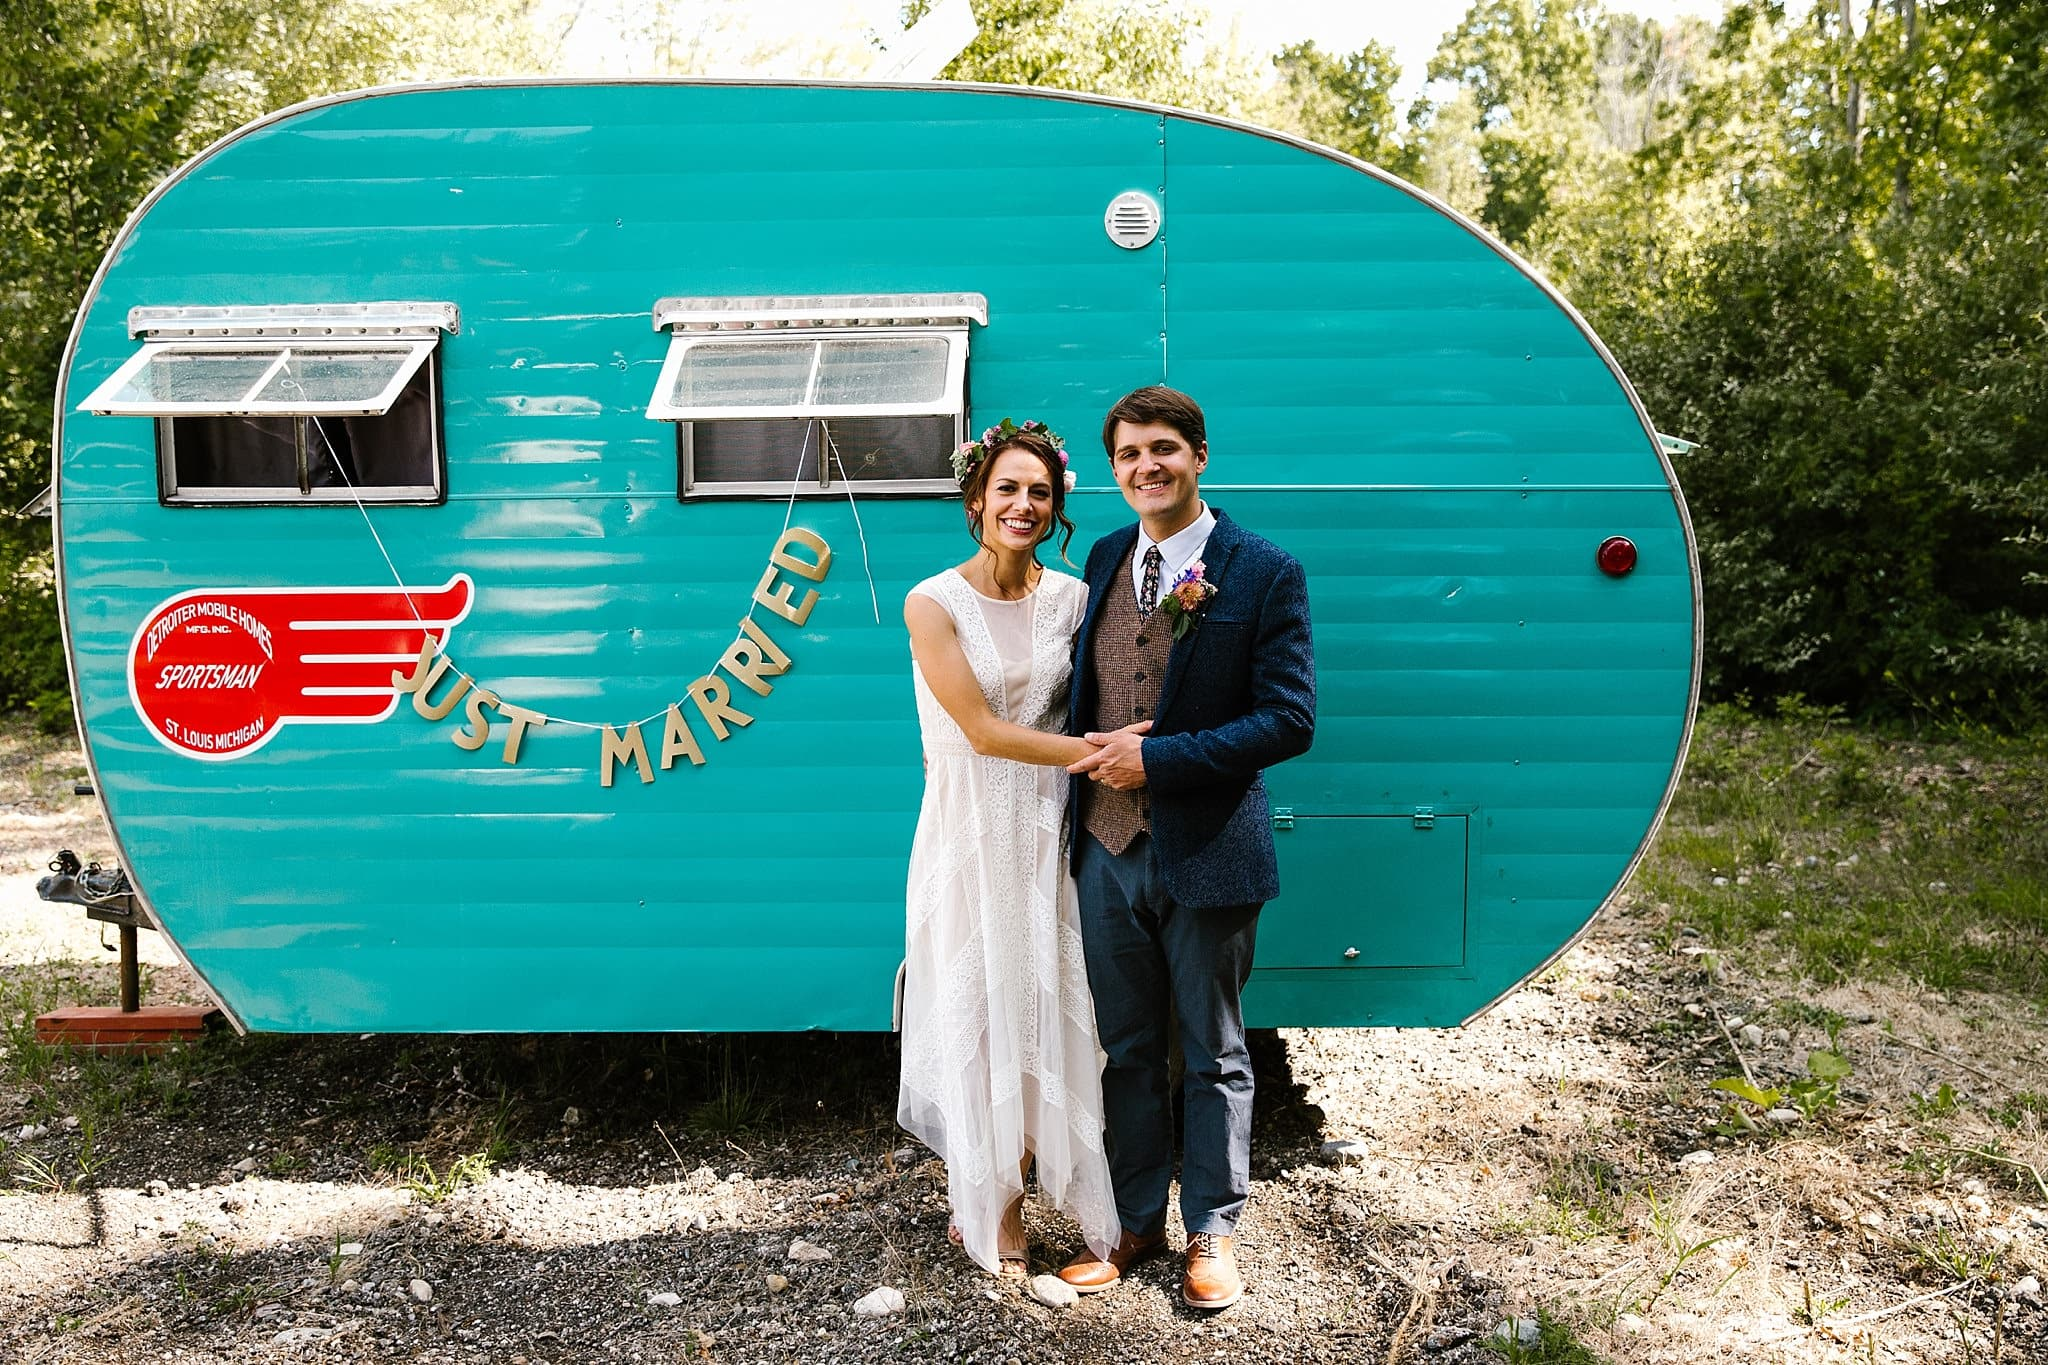 Destination Camp Wedding Campground Campsite Wedding Intimate Wedding DIY Wedding michigan wedding photographer ME+HIM Photography